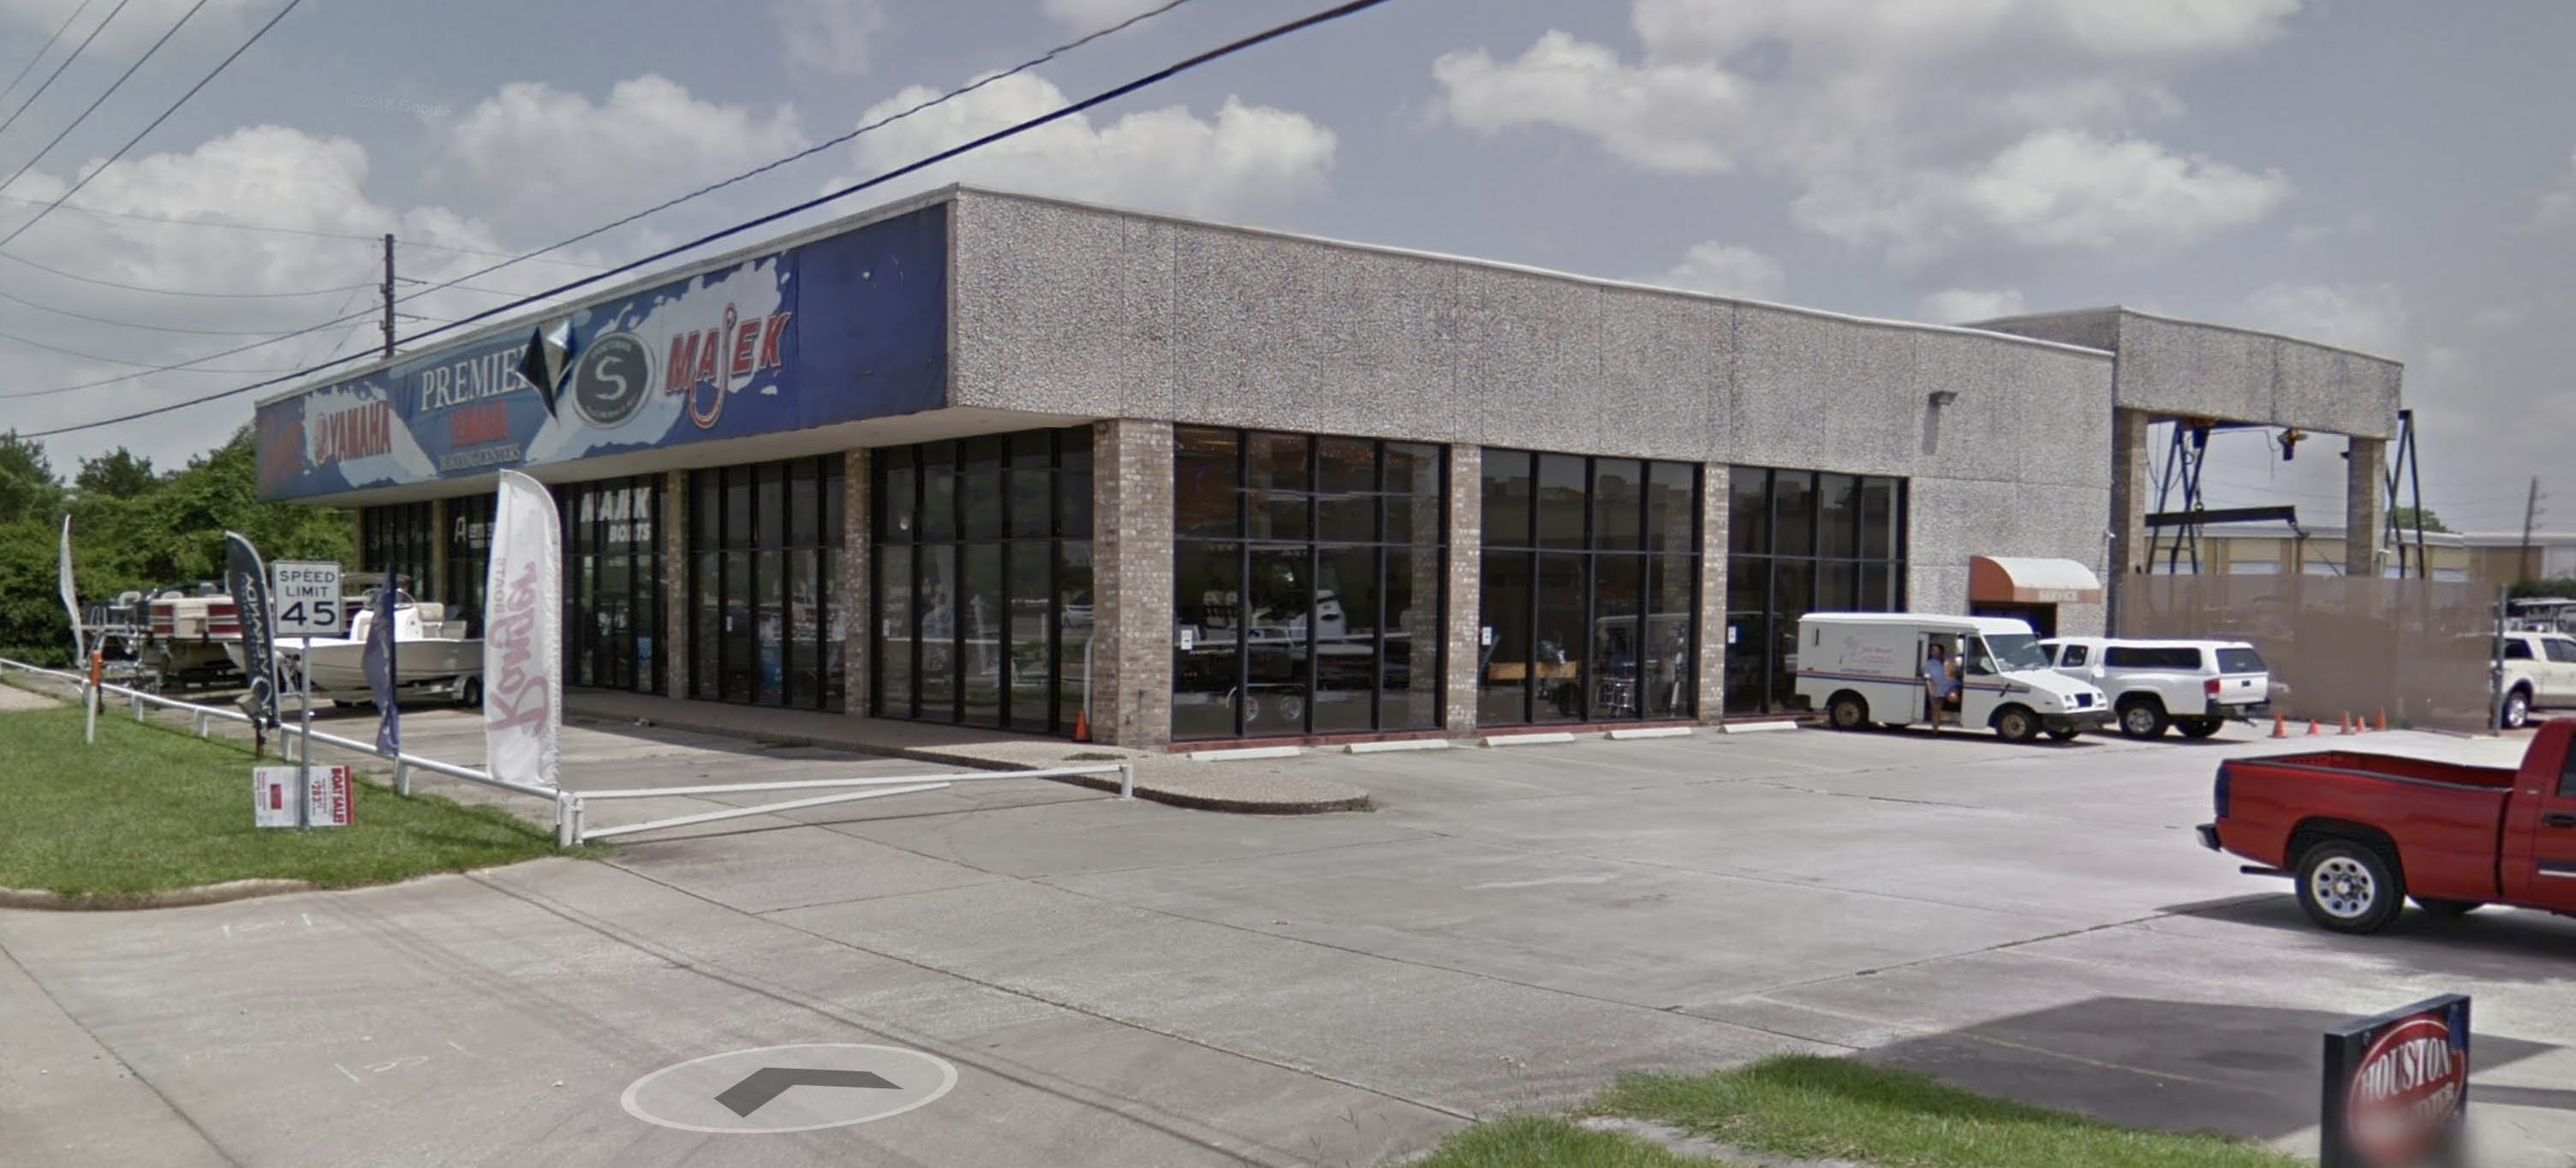 Store front image for the dealership located at Houston, TX